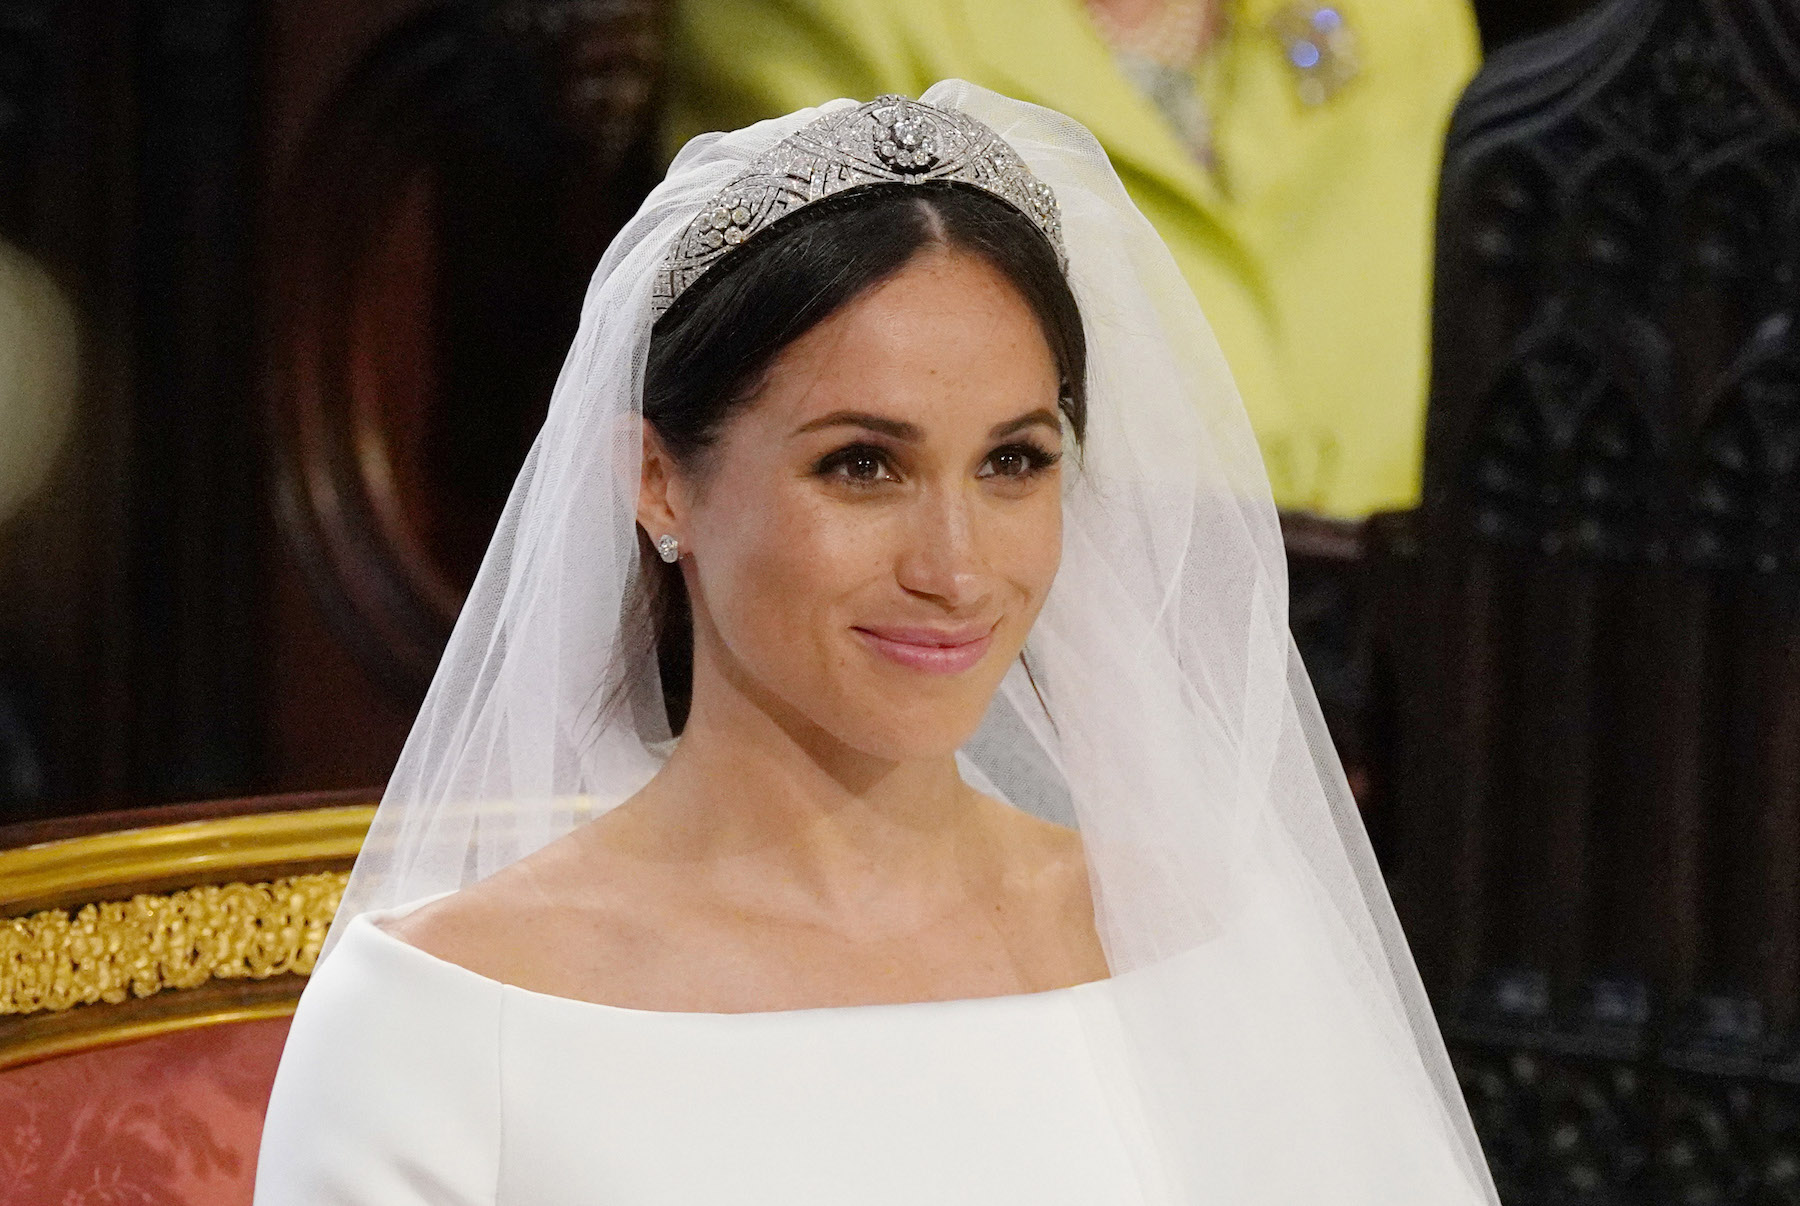 Meghan Markle at Royal Wedding makeup look